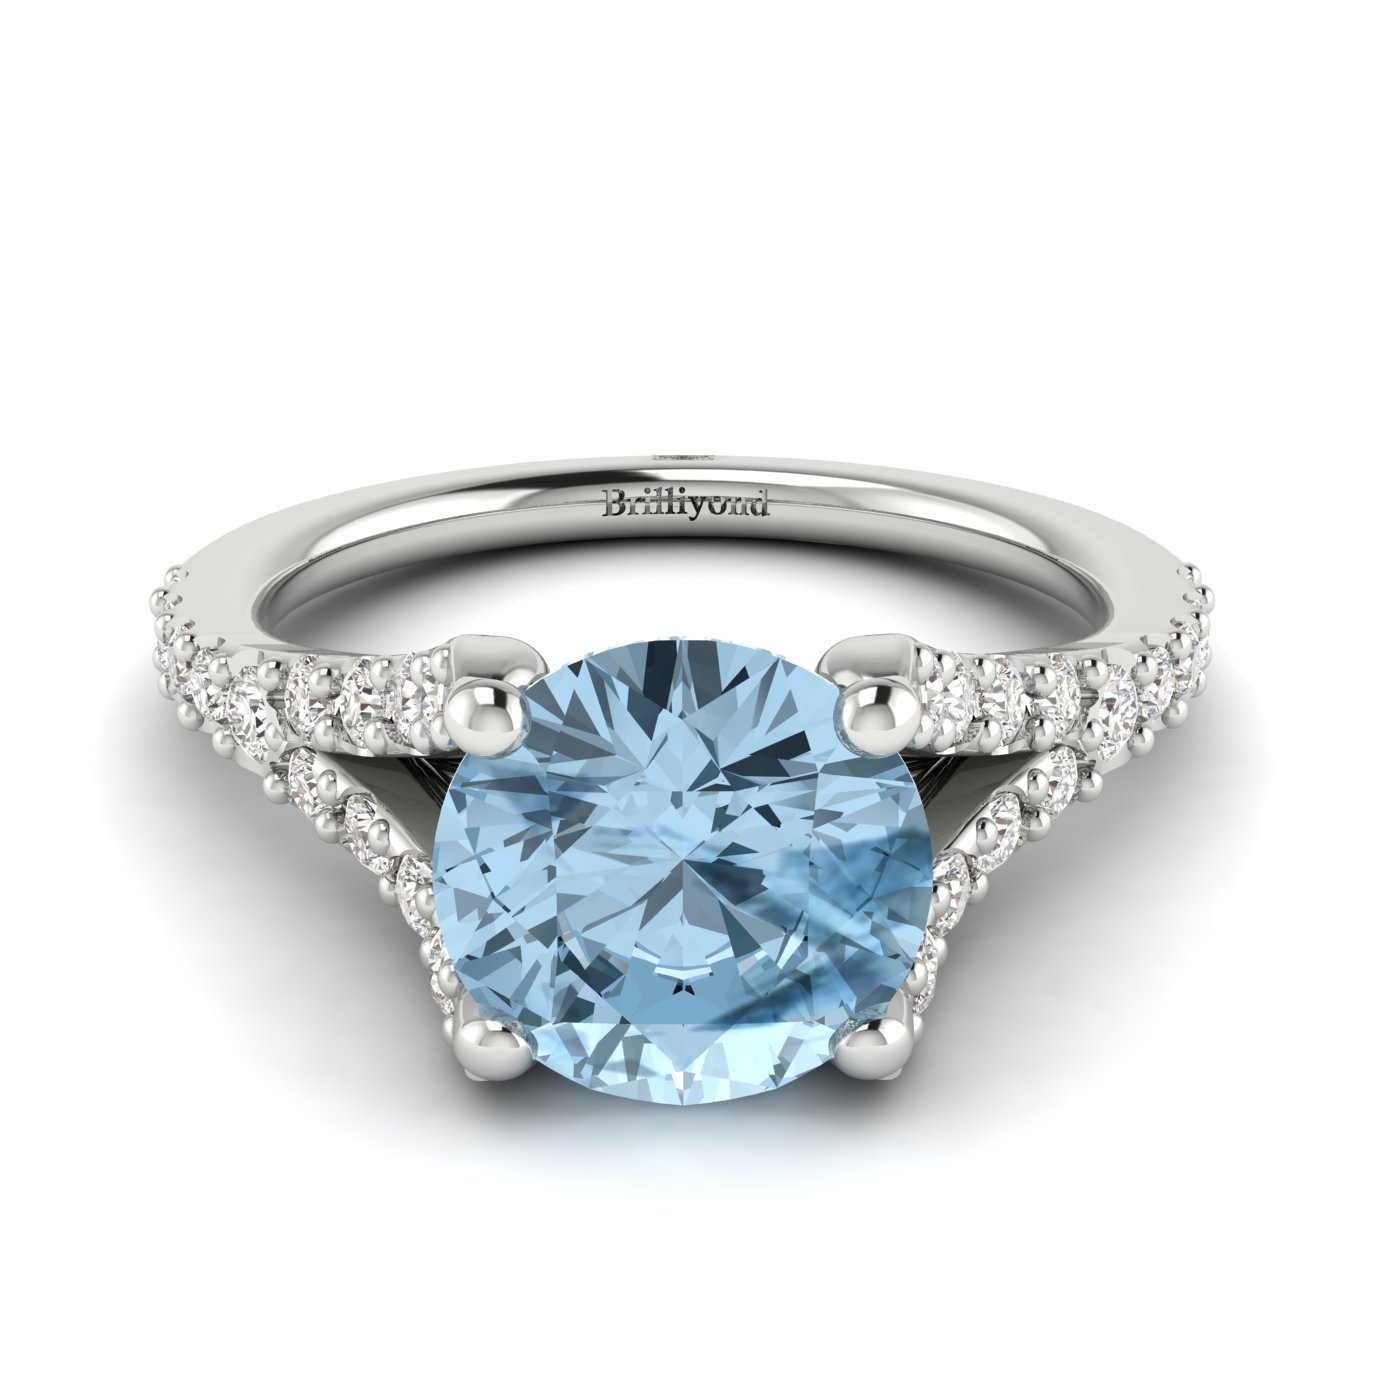 A white gold engagement ring with 6mm round cut natural aquamarine centre stone.